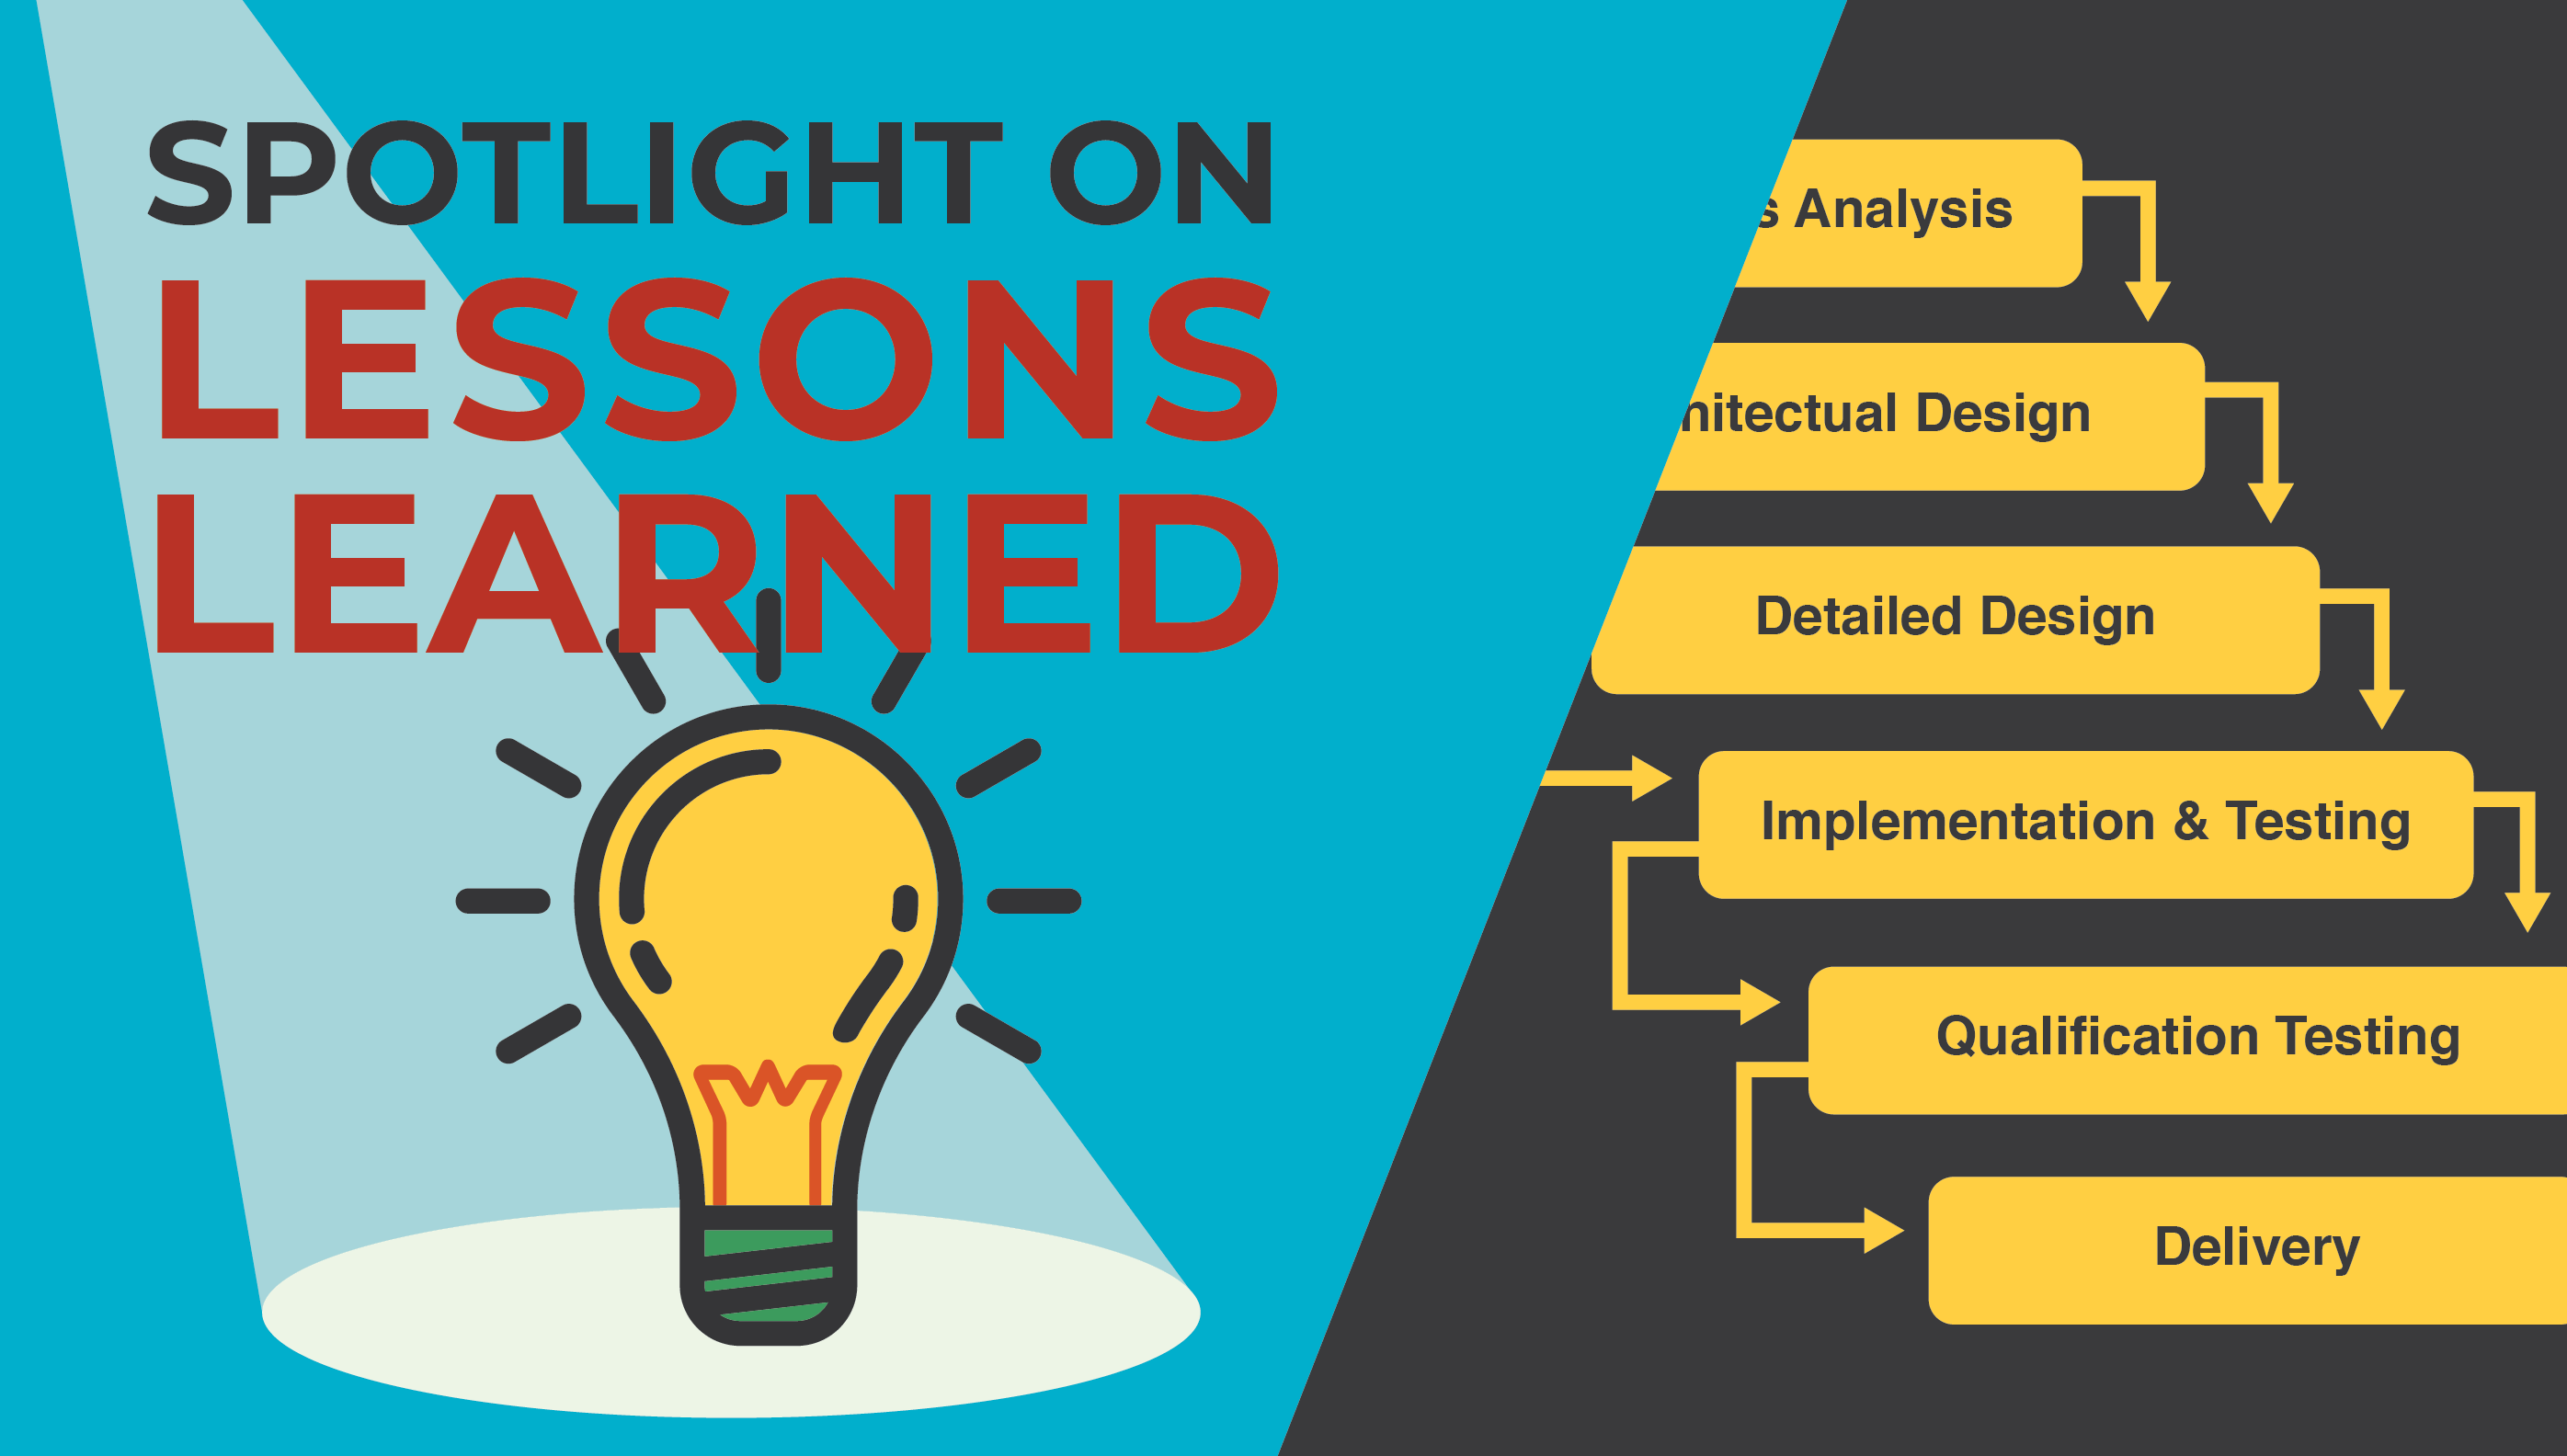 Spotlight On Lessons Learned Waterfall Diagram Featured Image